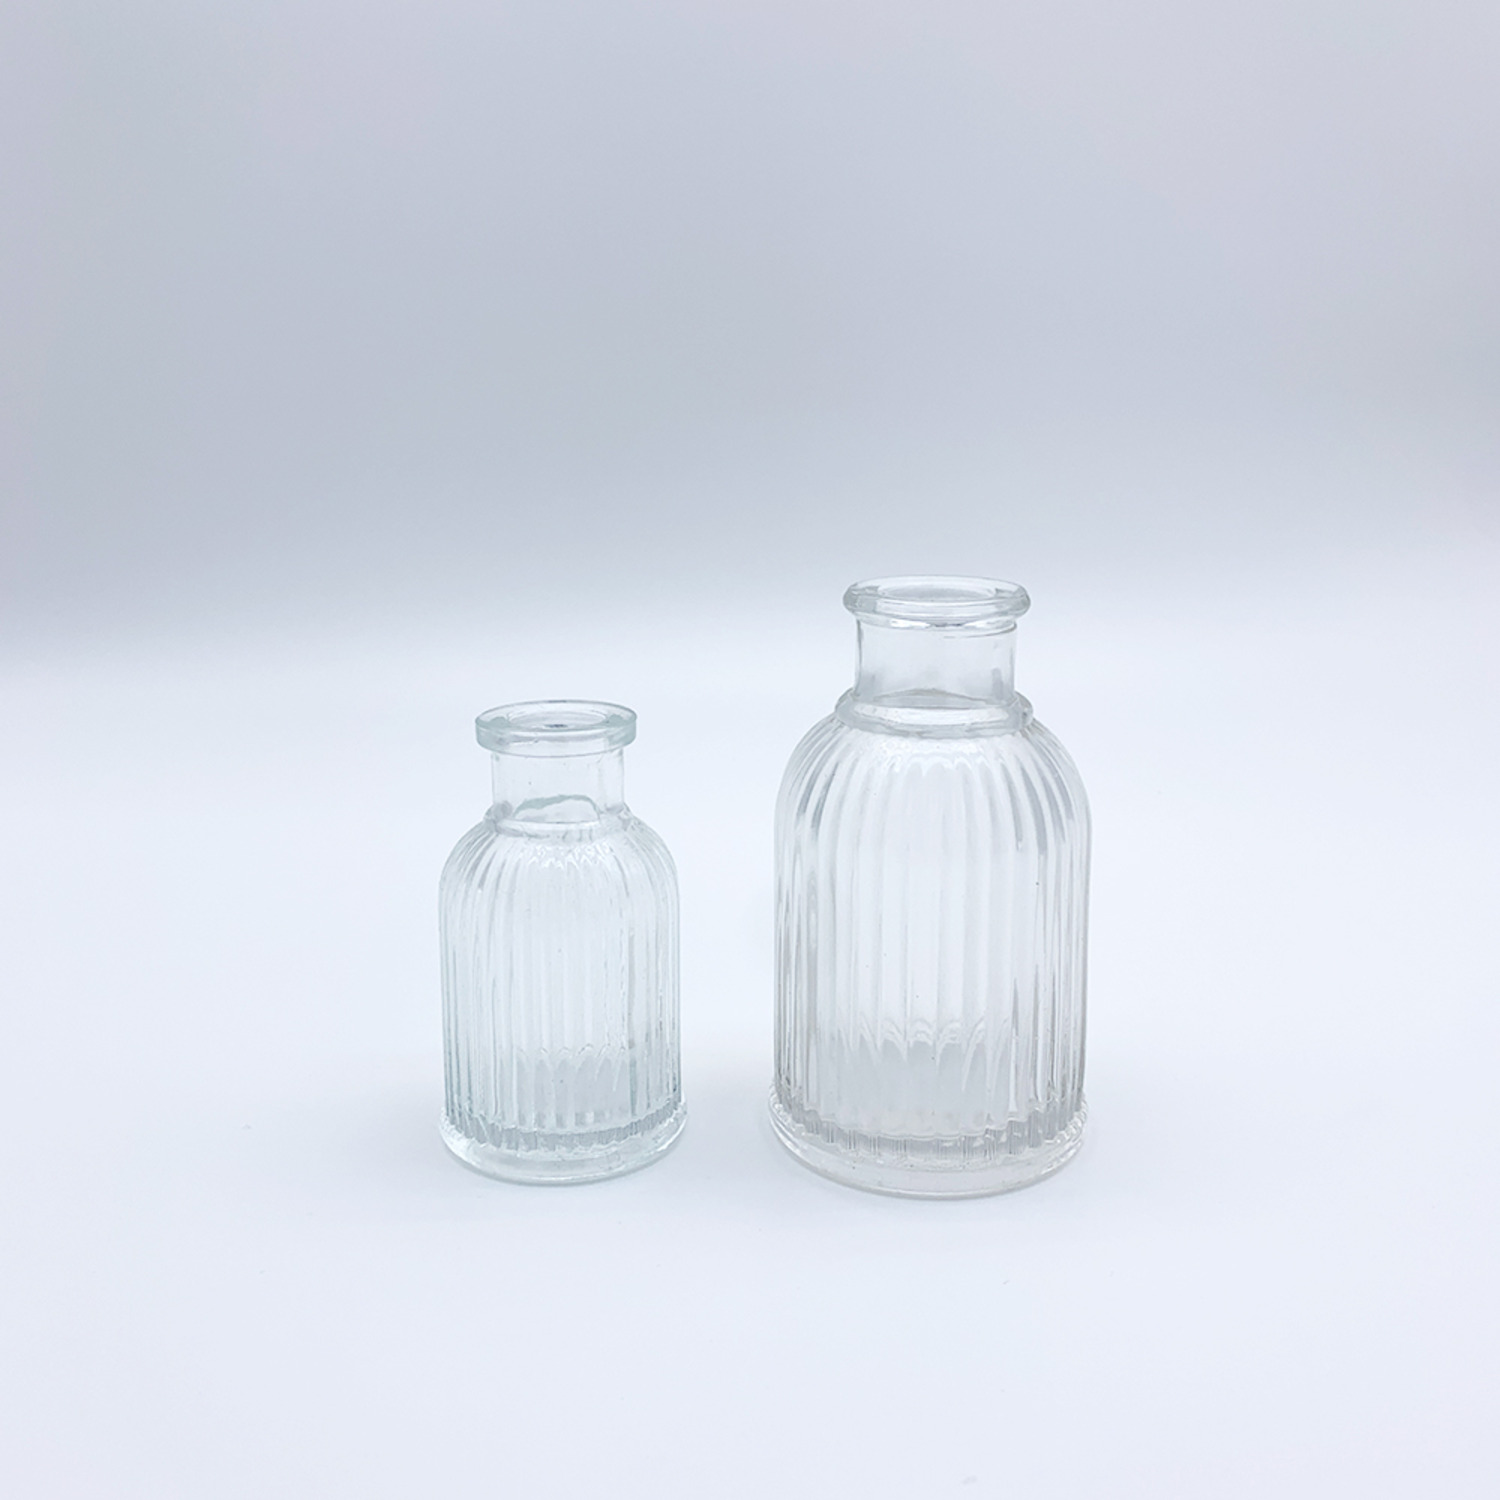 [Plus82 Project] Mini Glass Vase -2 size